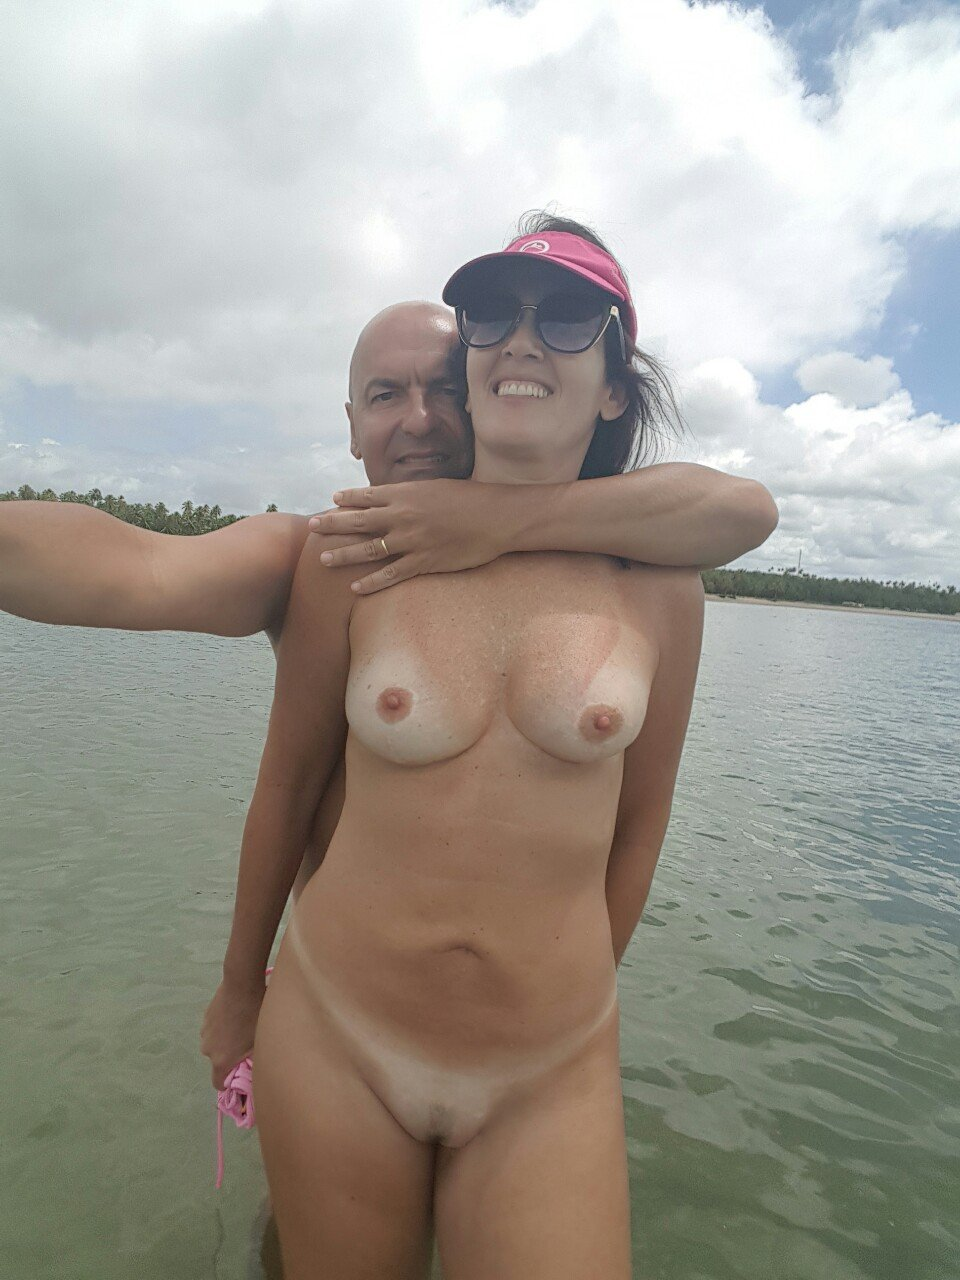 Hairy anal tits #1